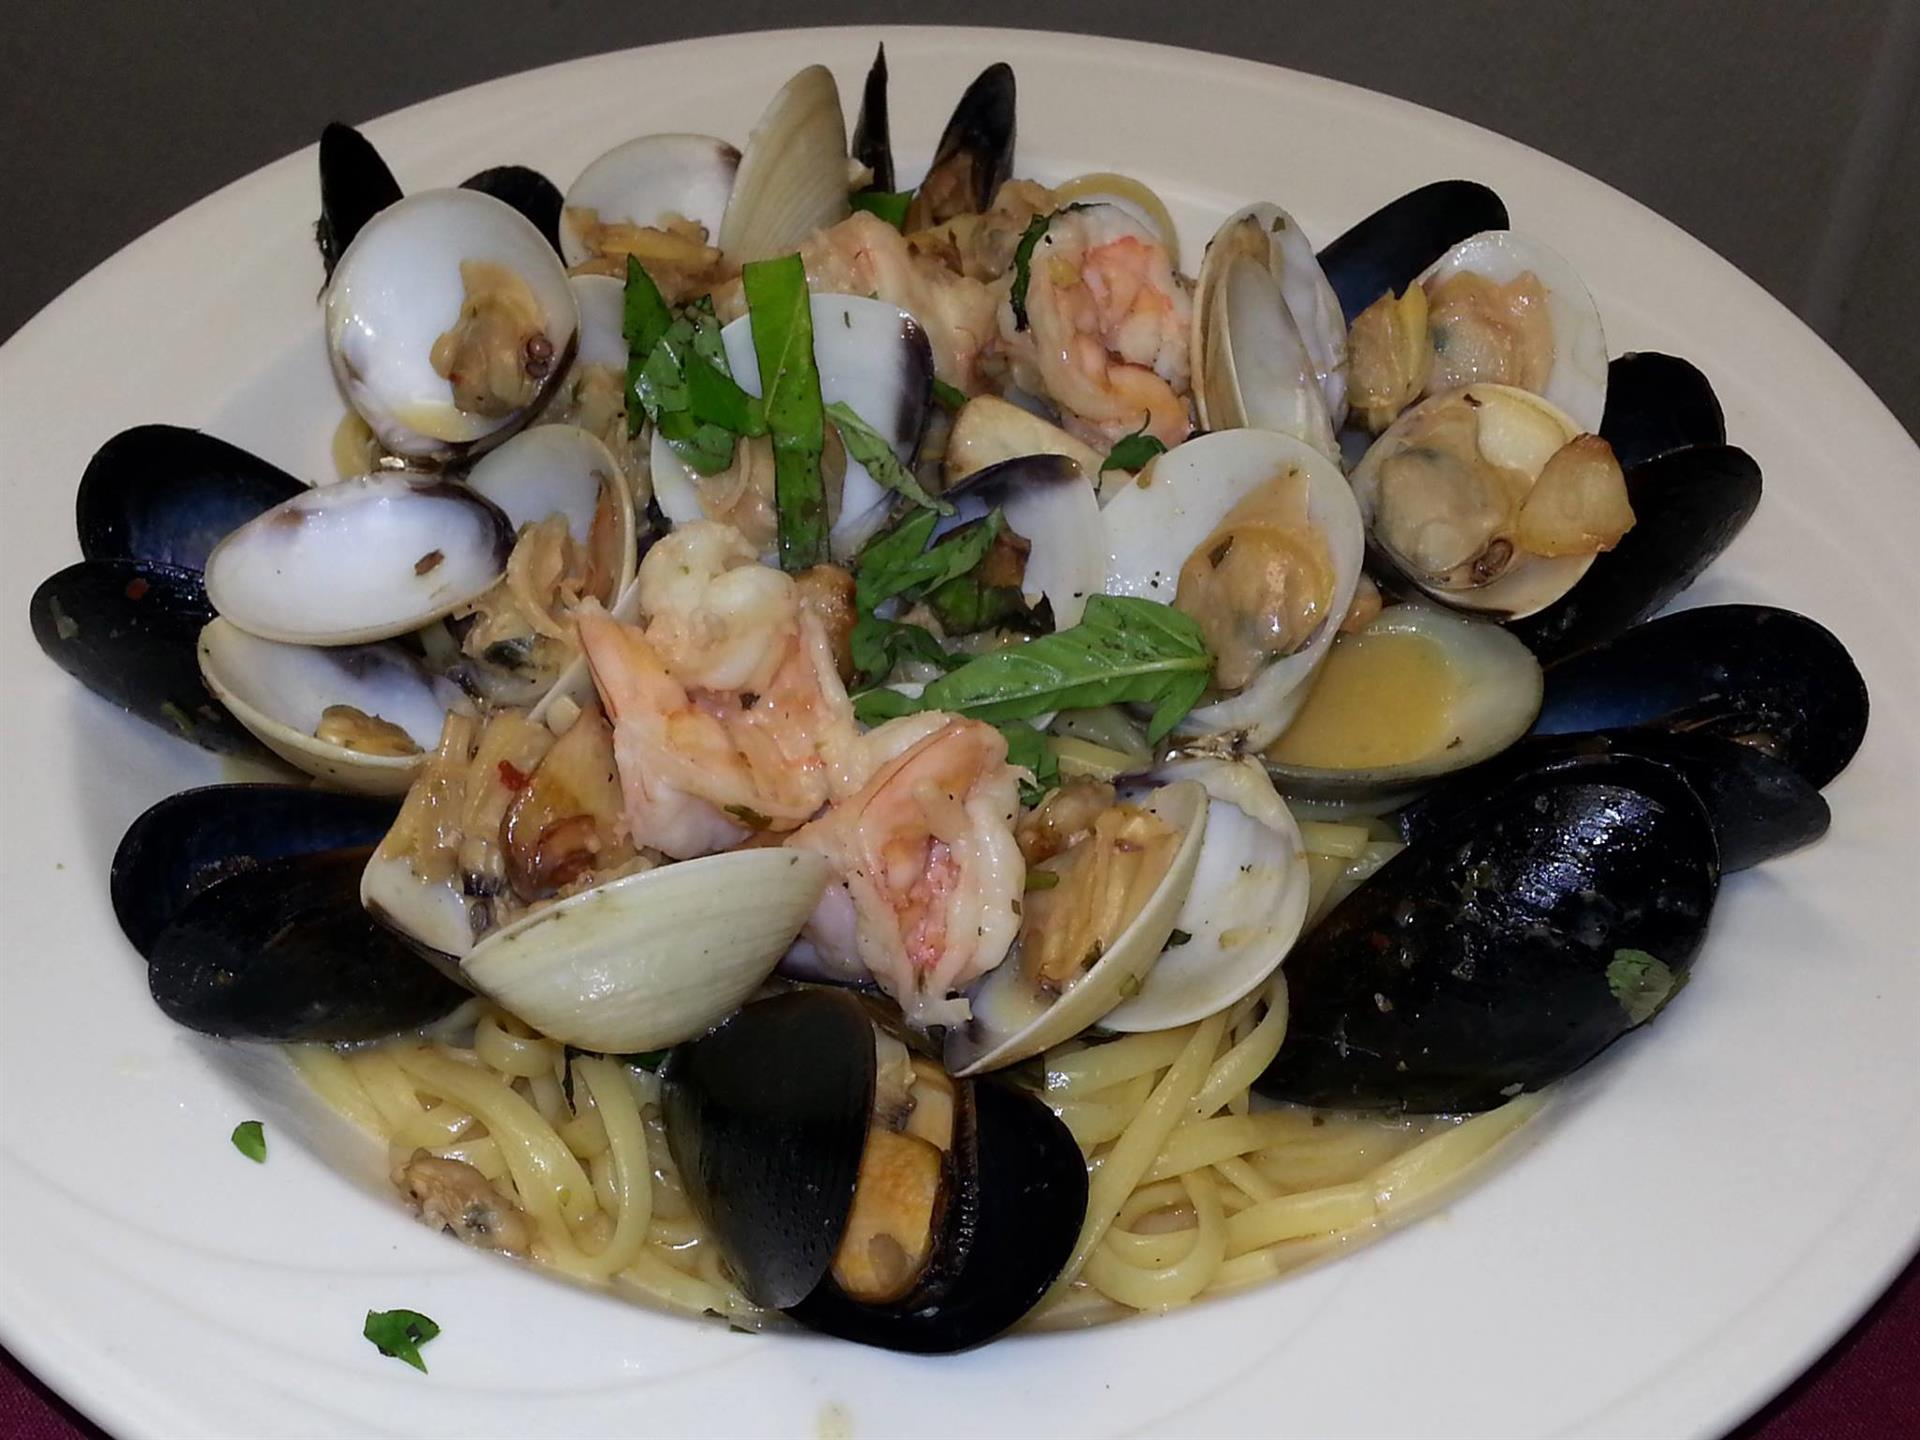 seafood entree with mussels, clams and shrimp